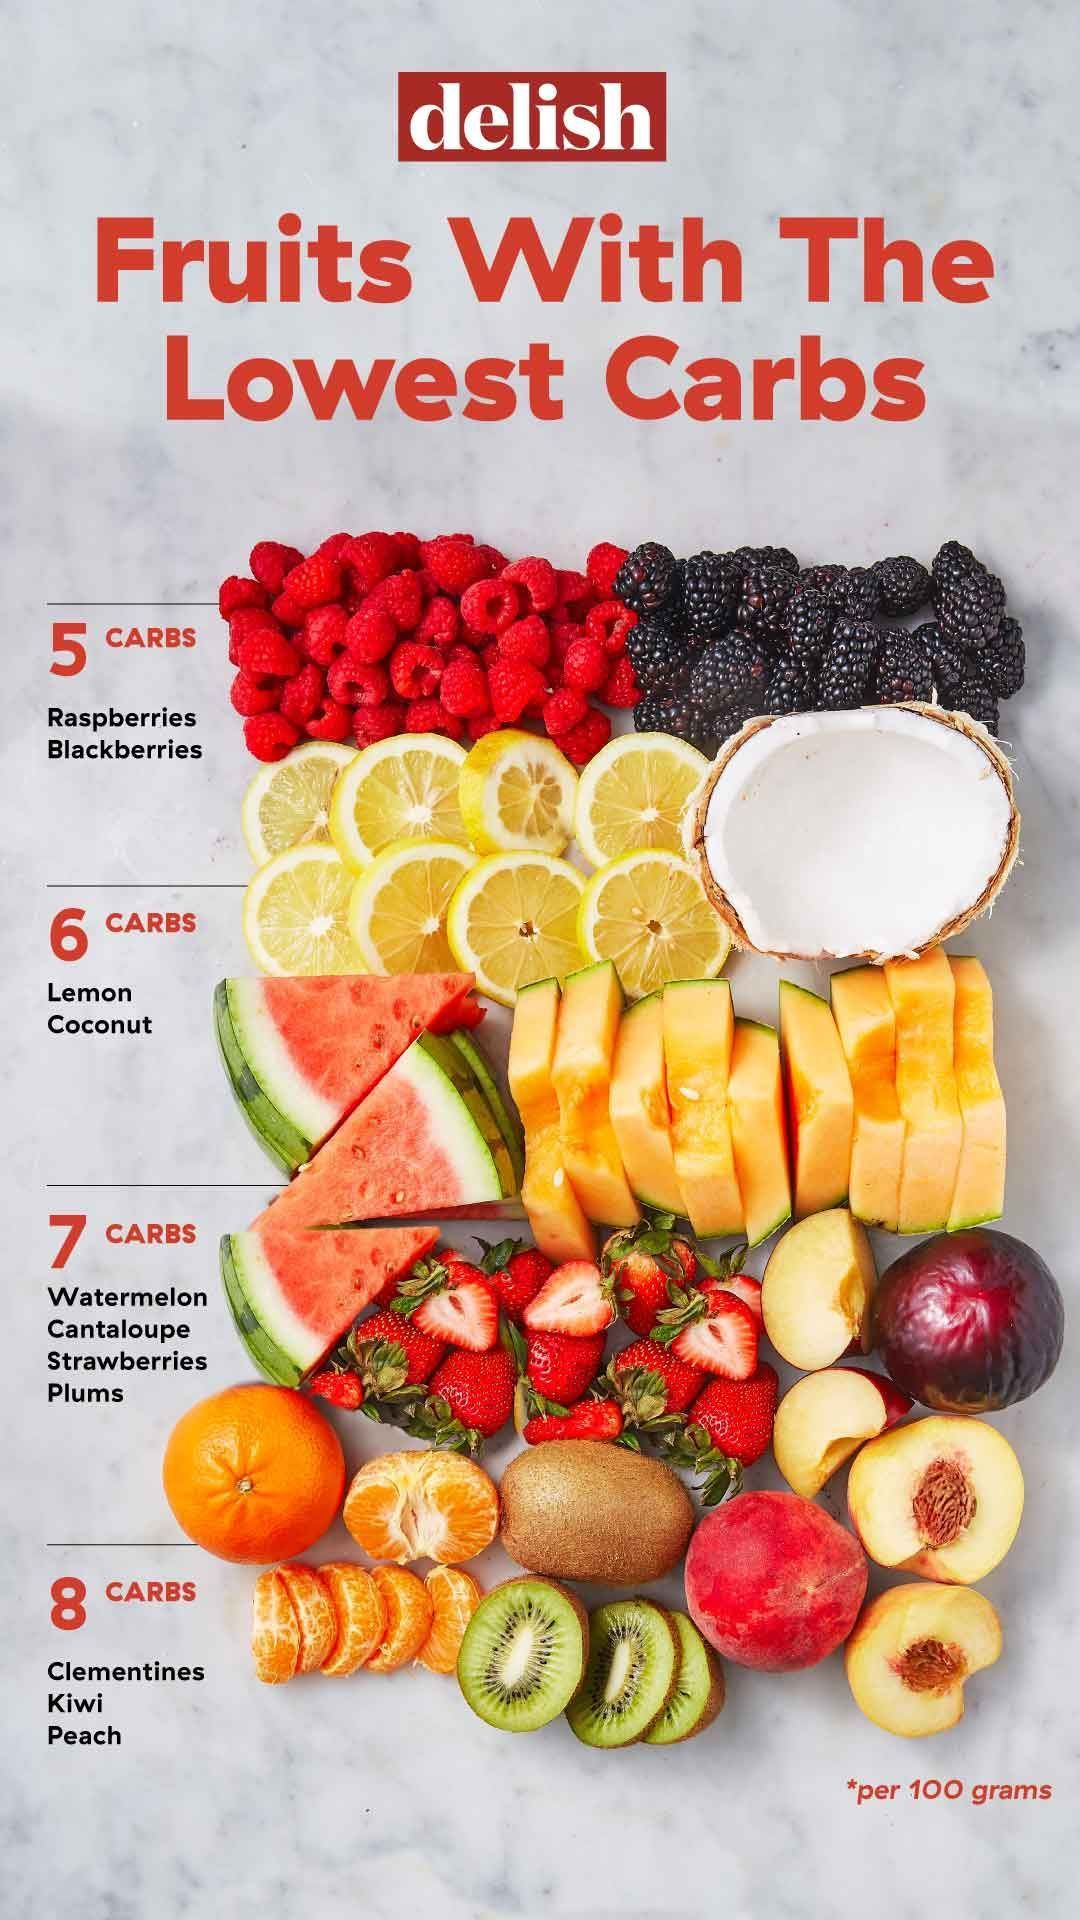 If You Re On The Keto Diet Or A Low Carb Diet These Fruits And Berries Will Be Your New Go Tos These Are Ba Keto Diet Food List Diet Food List Low Carb